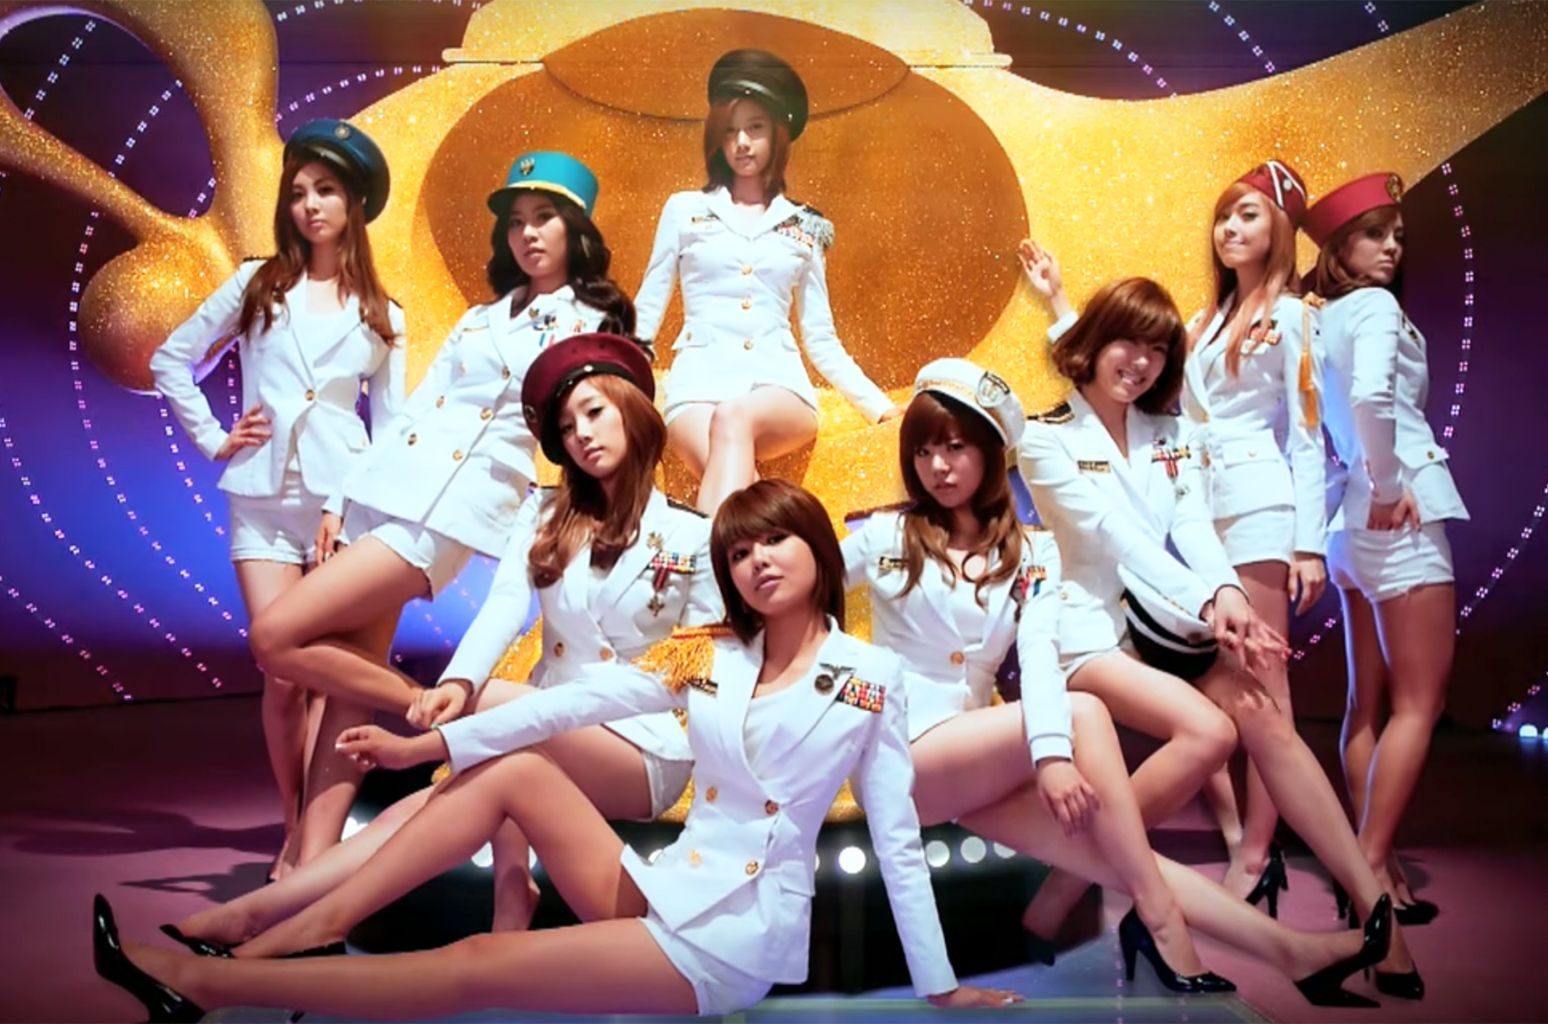 Music every girls generation single ranked worst best critics in